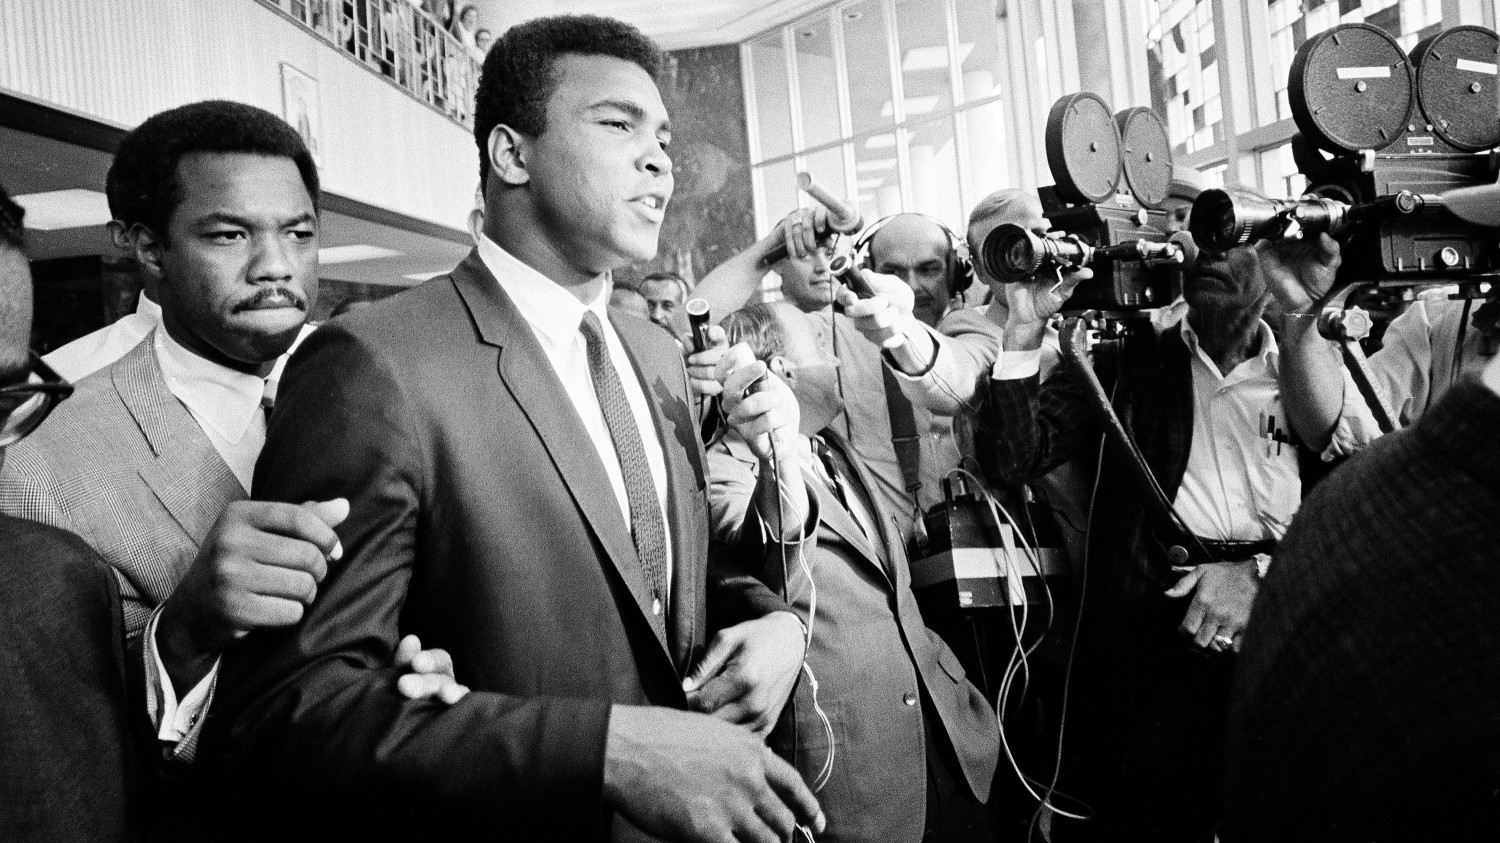 """Heavyweight boxing champion Muhammad Ali said, """"No comment"""" when confronted by the media as he left the Federal Building in Houston during his trial for refusing induction into the U.S. Army in 1967. Ed Kolenovsky/AP Photo"""